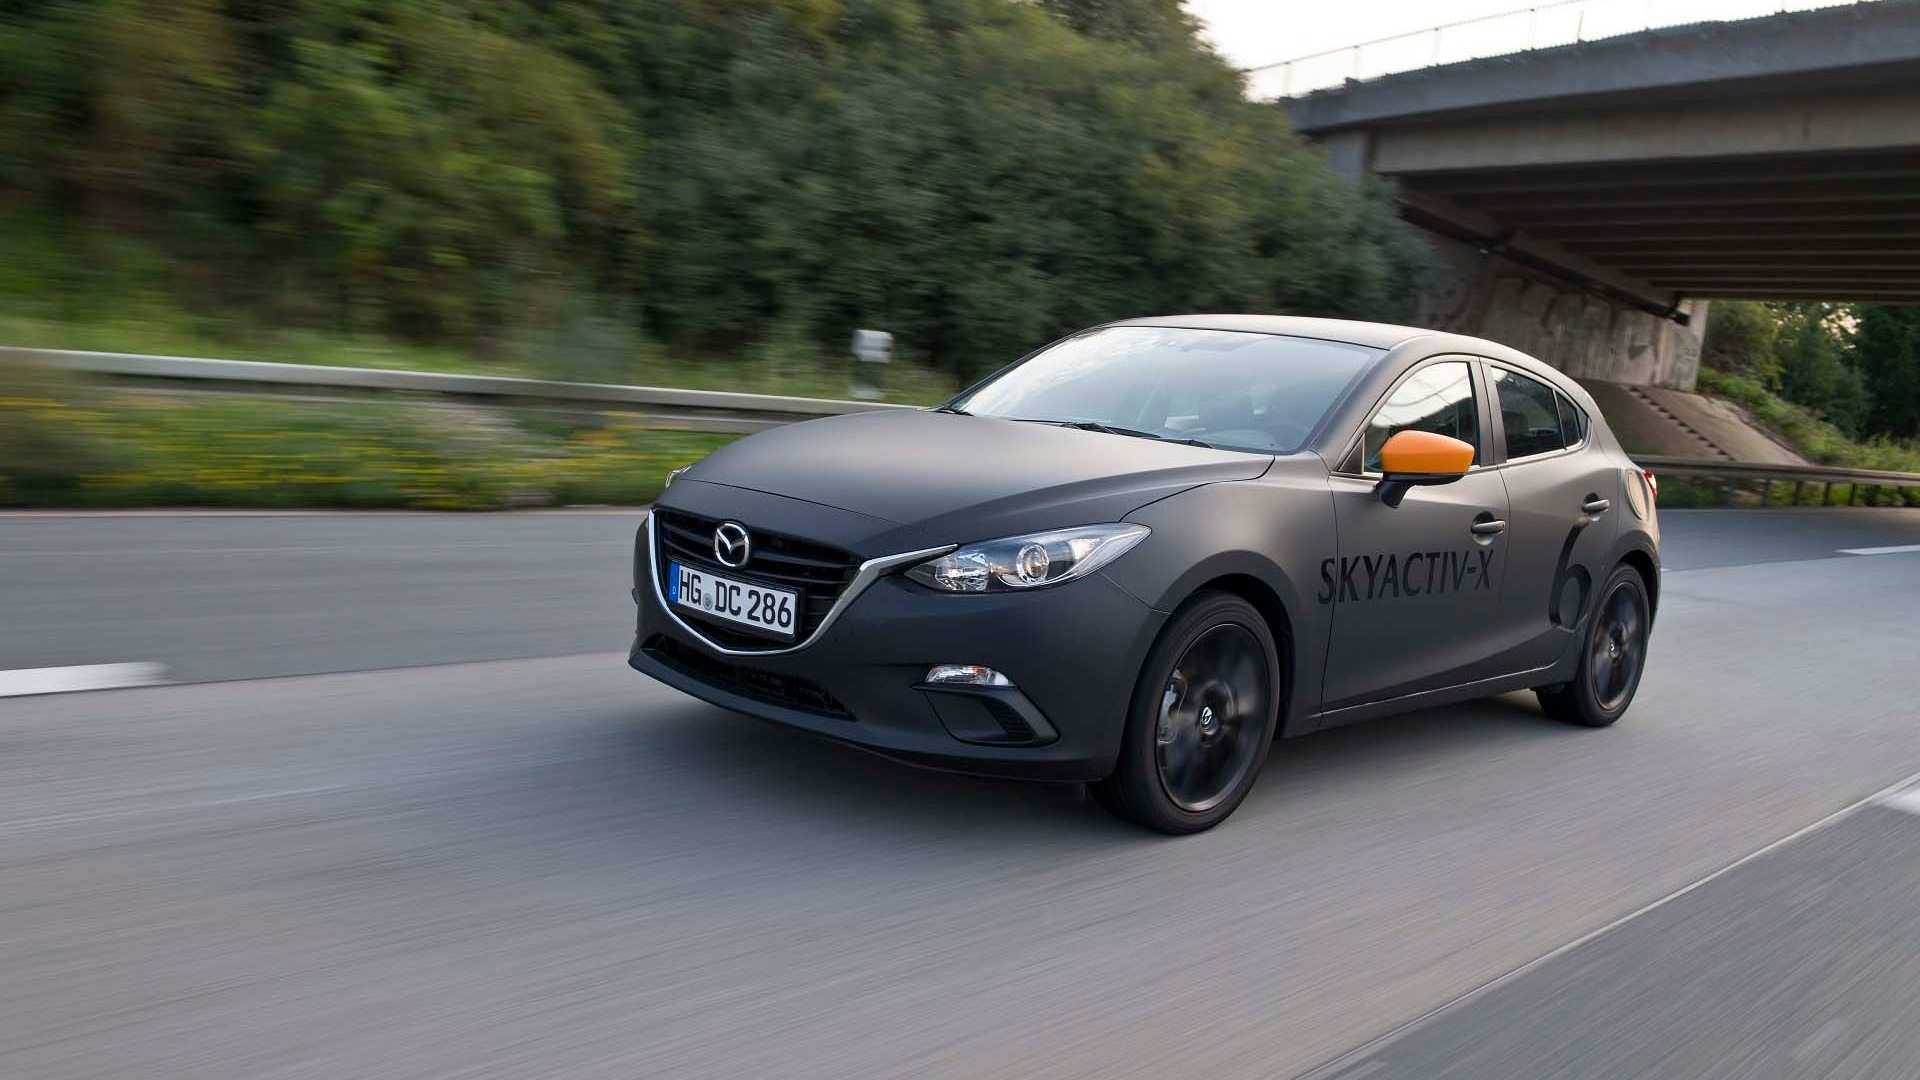 78 Gallery of New Mazda Exterior 2020 Overview for New Mazda Exterior 2020